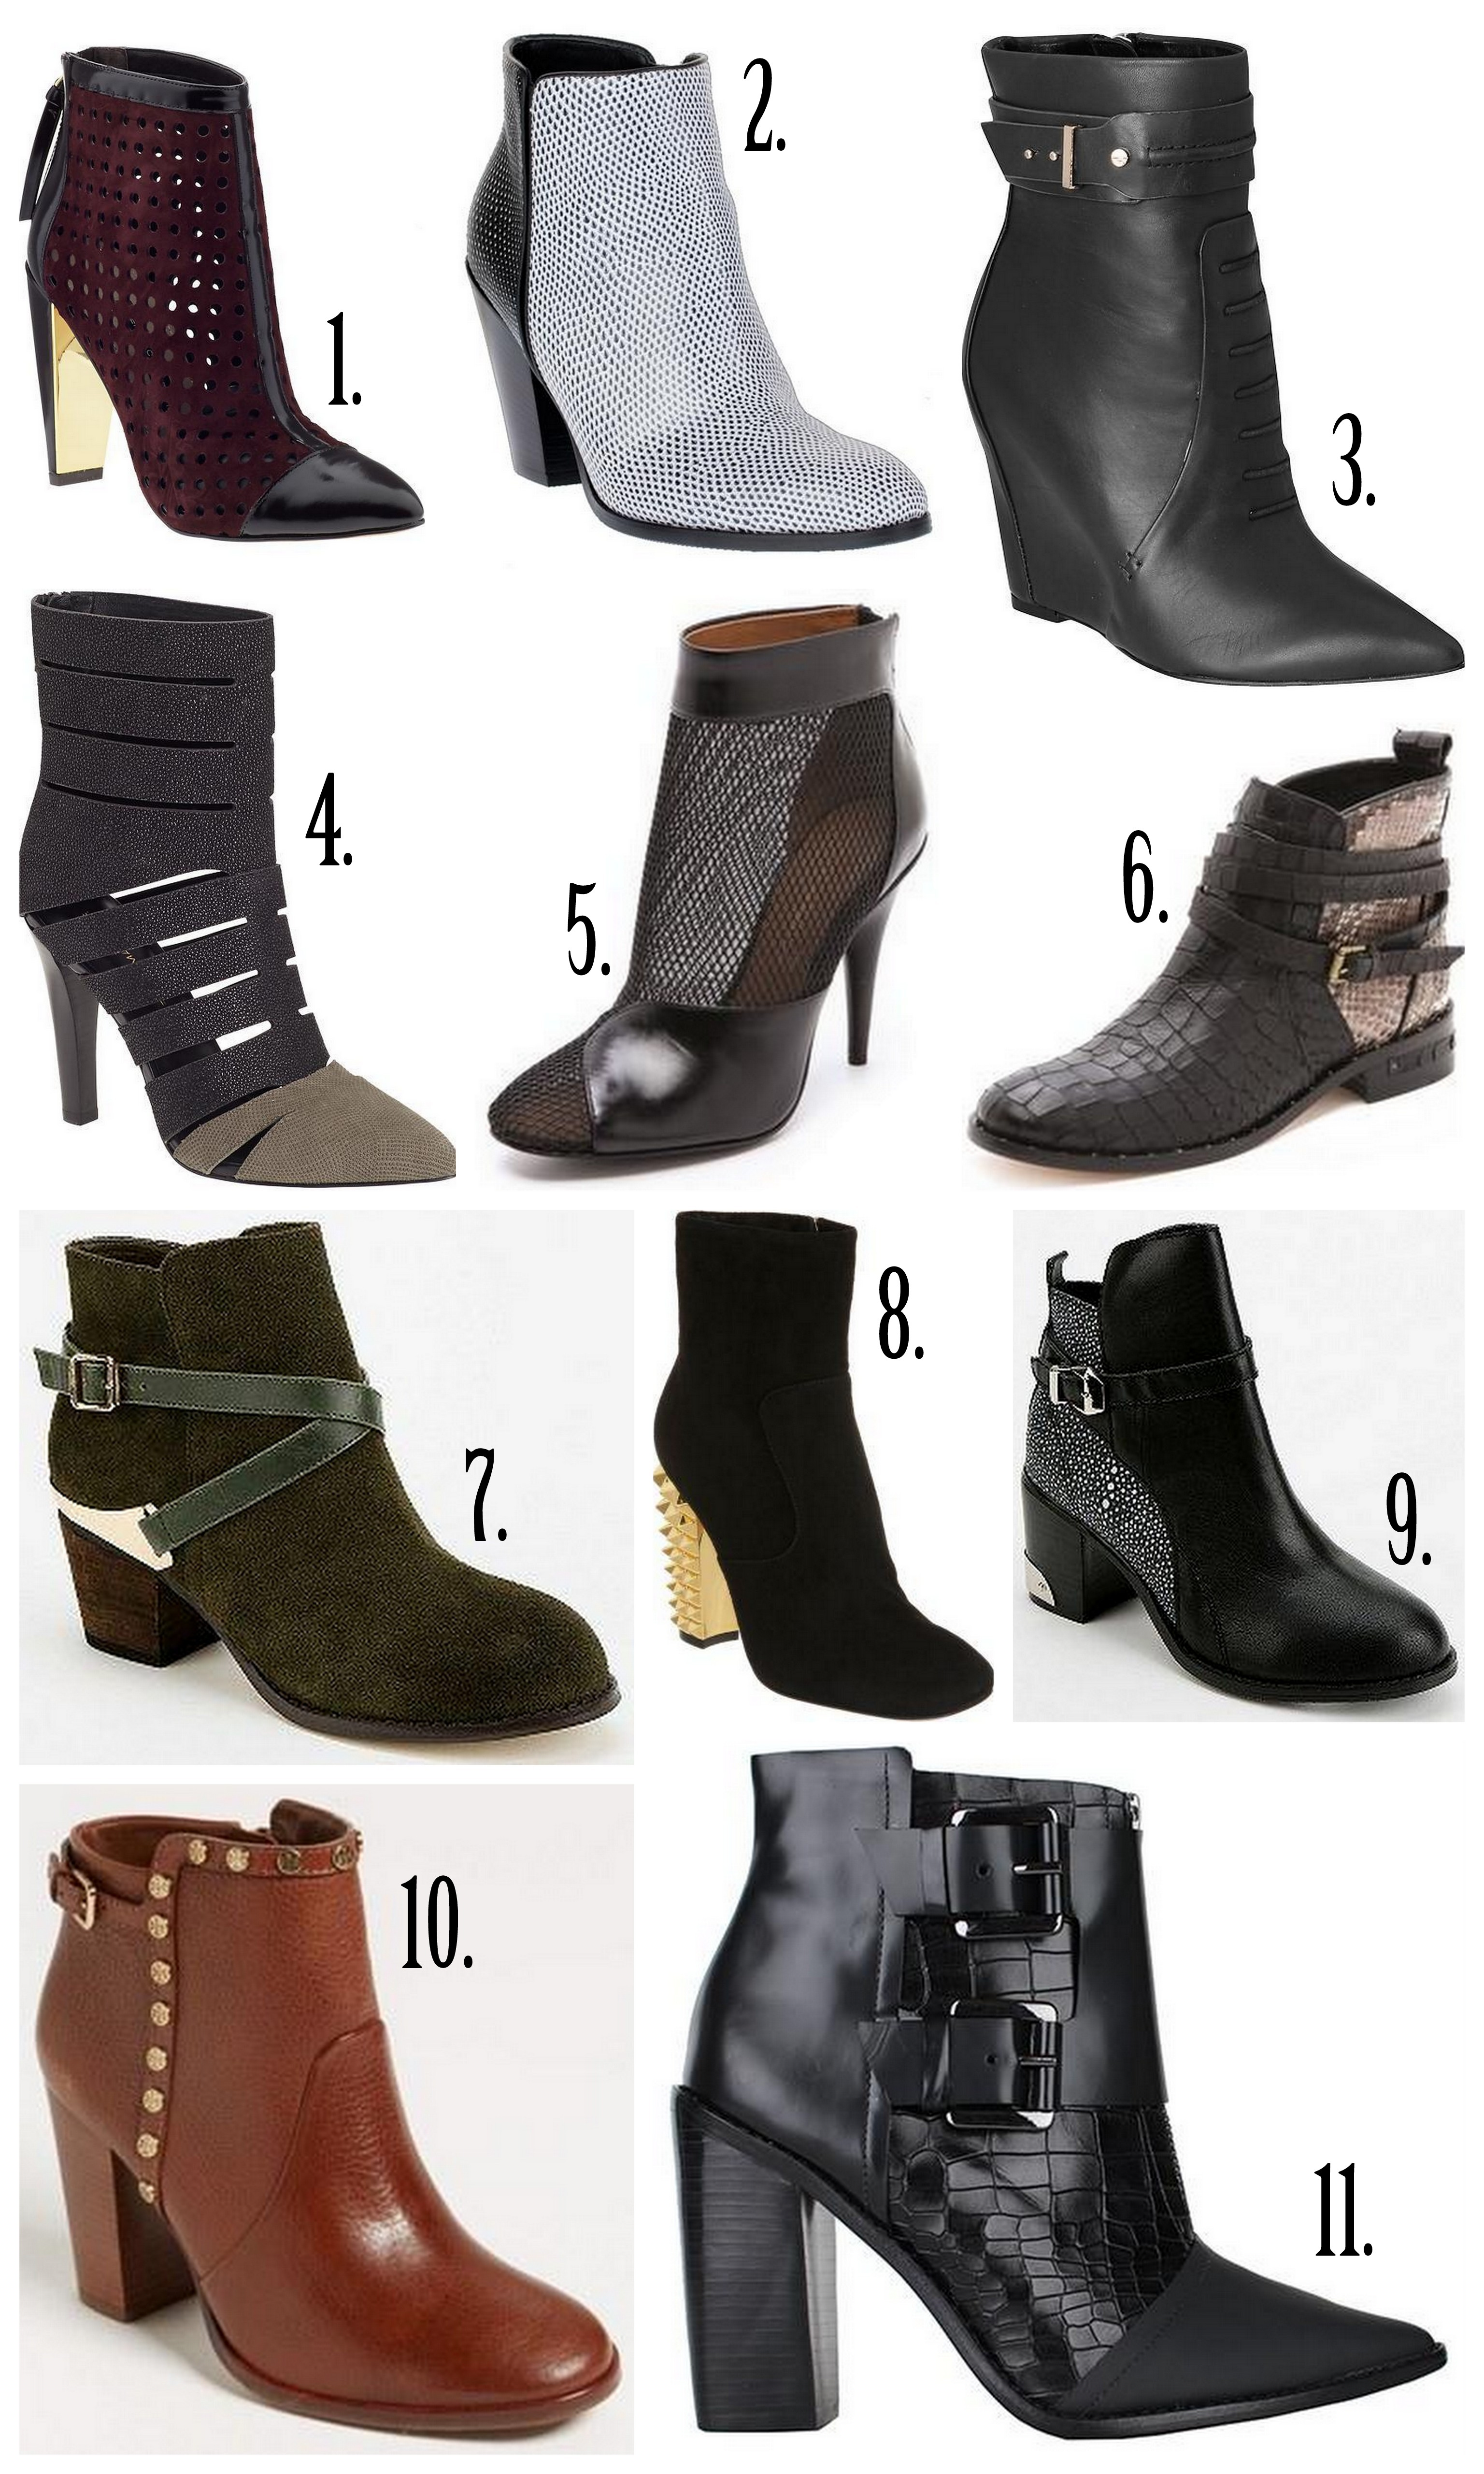 Best Ankle Boots 9ICBLy5G